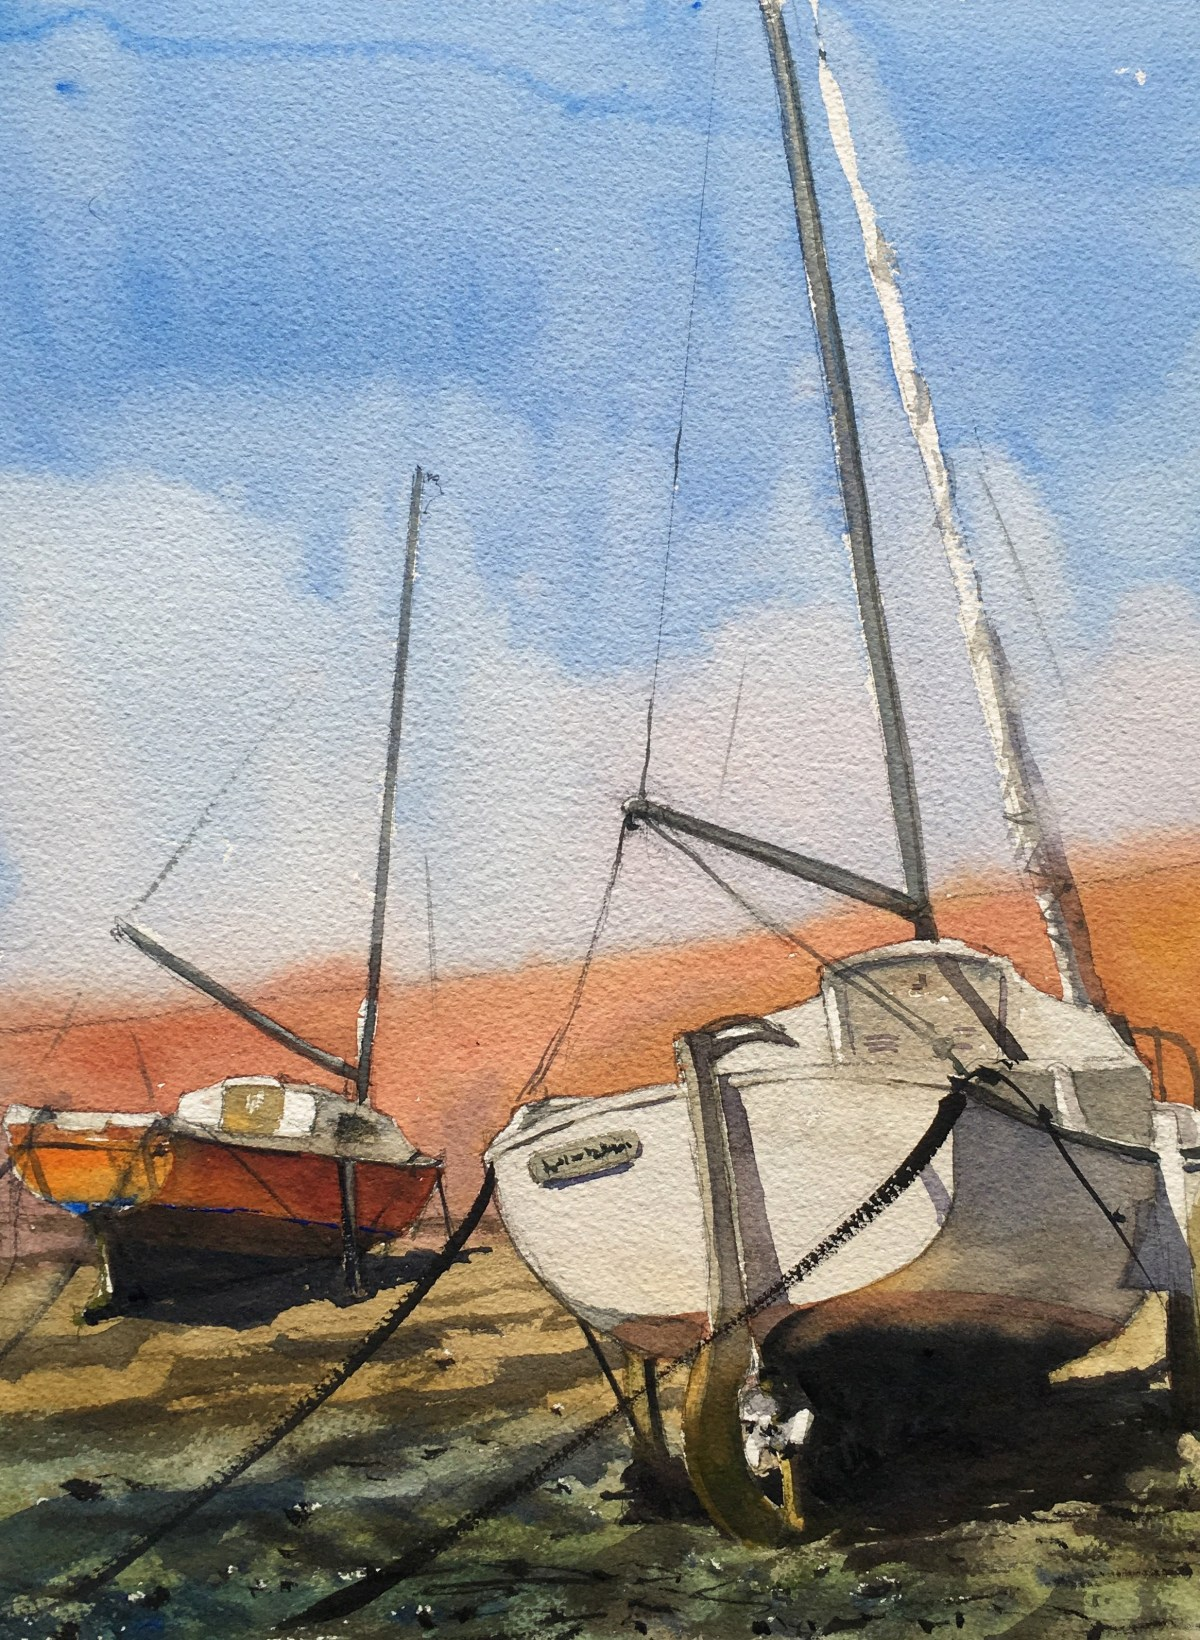 Two sailing boats on dry land on a hot day